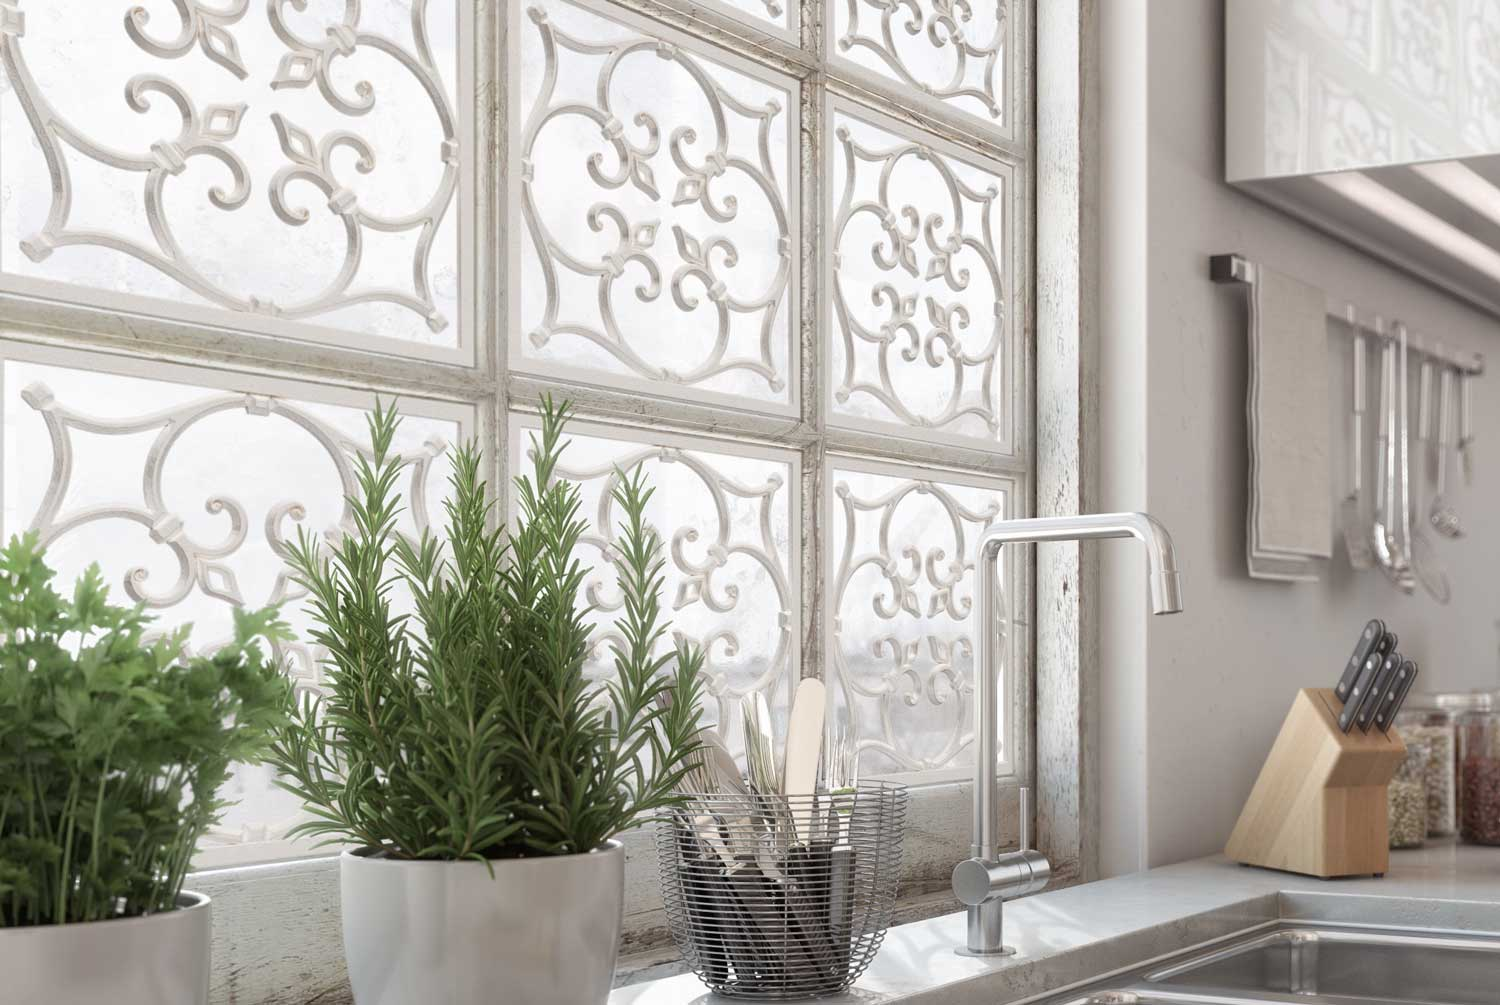 glass-paned window with metalwork above a kitchen sink